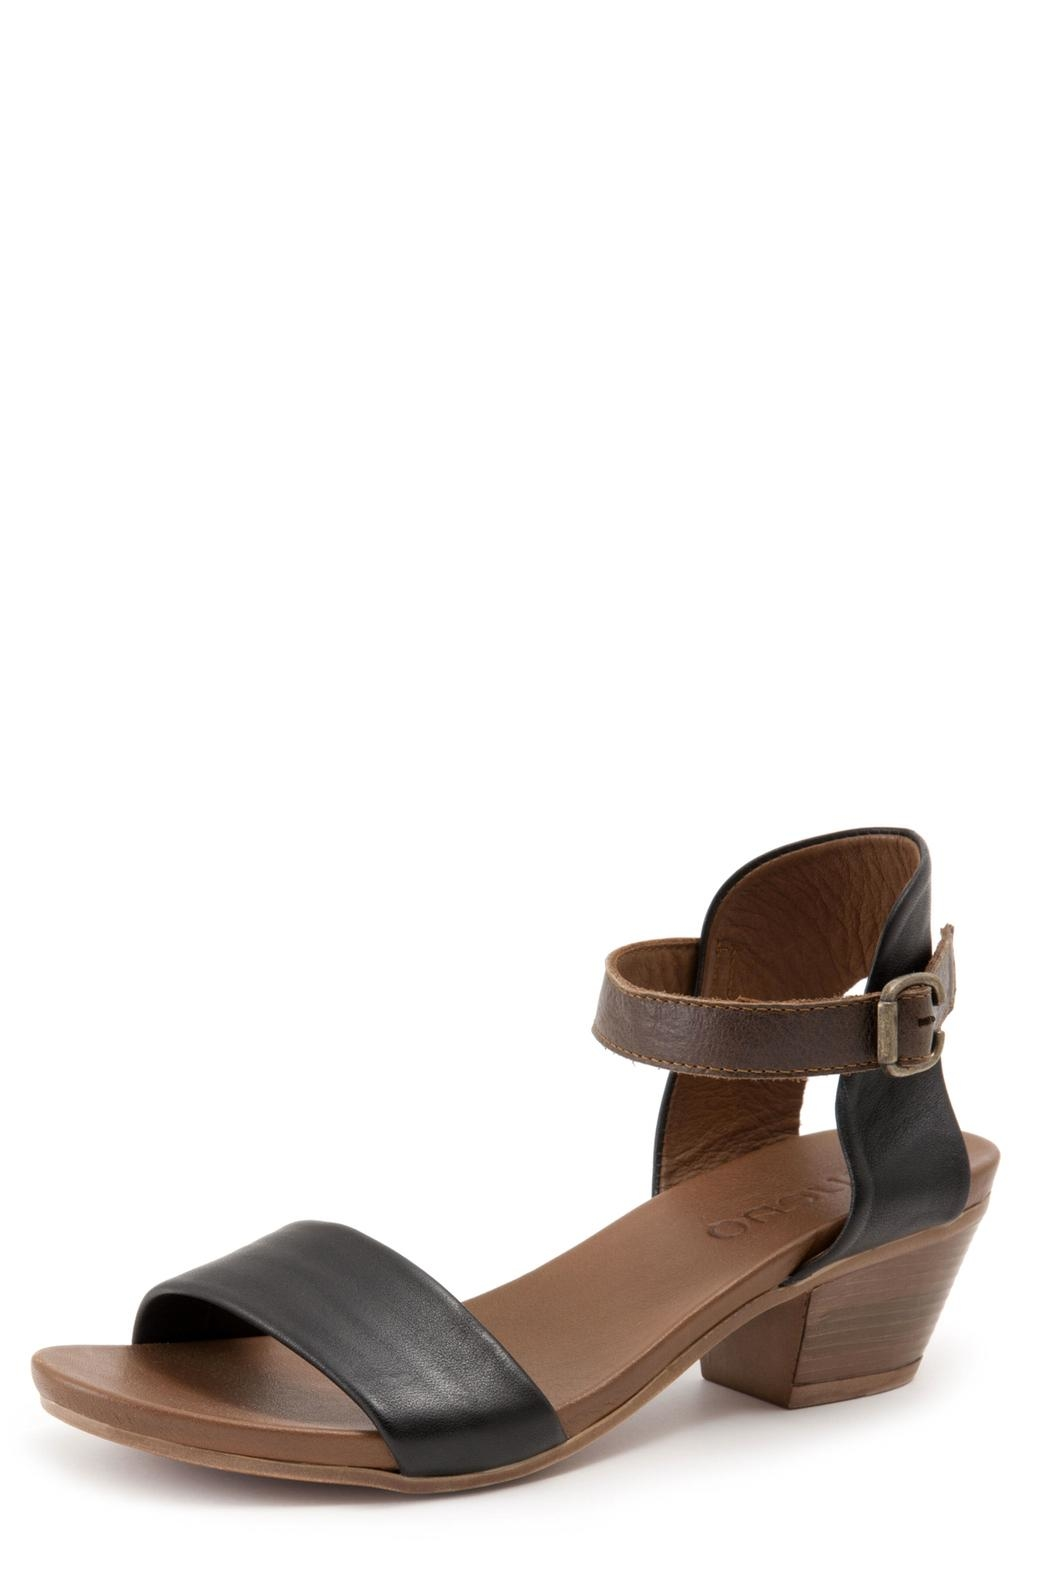 Bueno Shoes Open Toed Shoes - Front Cropped Image